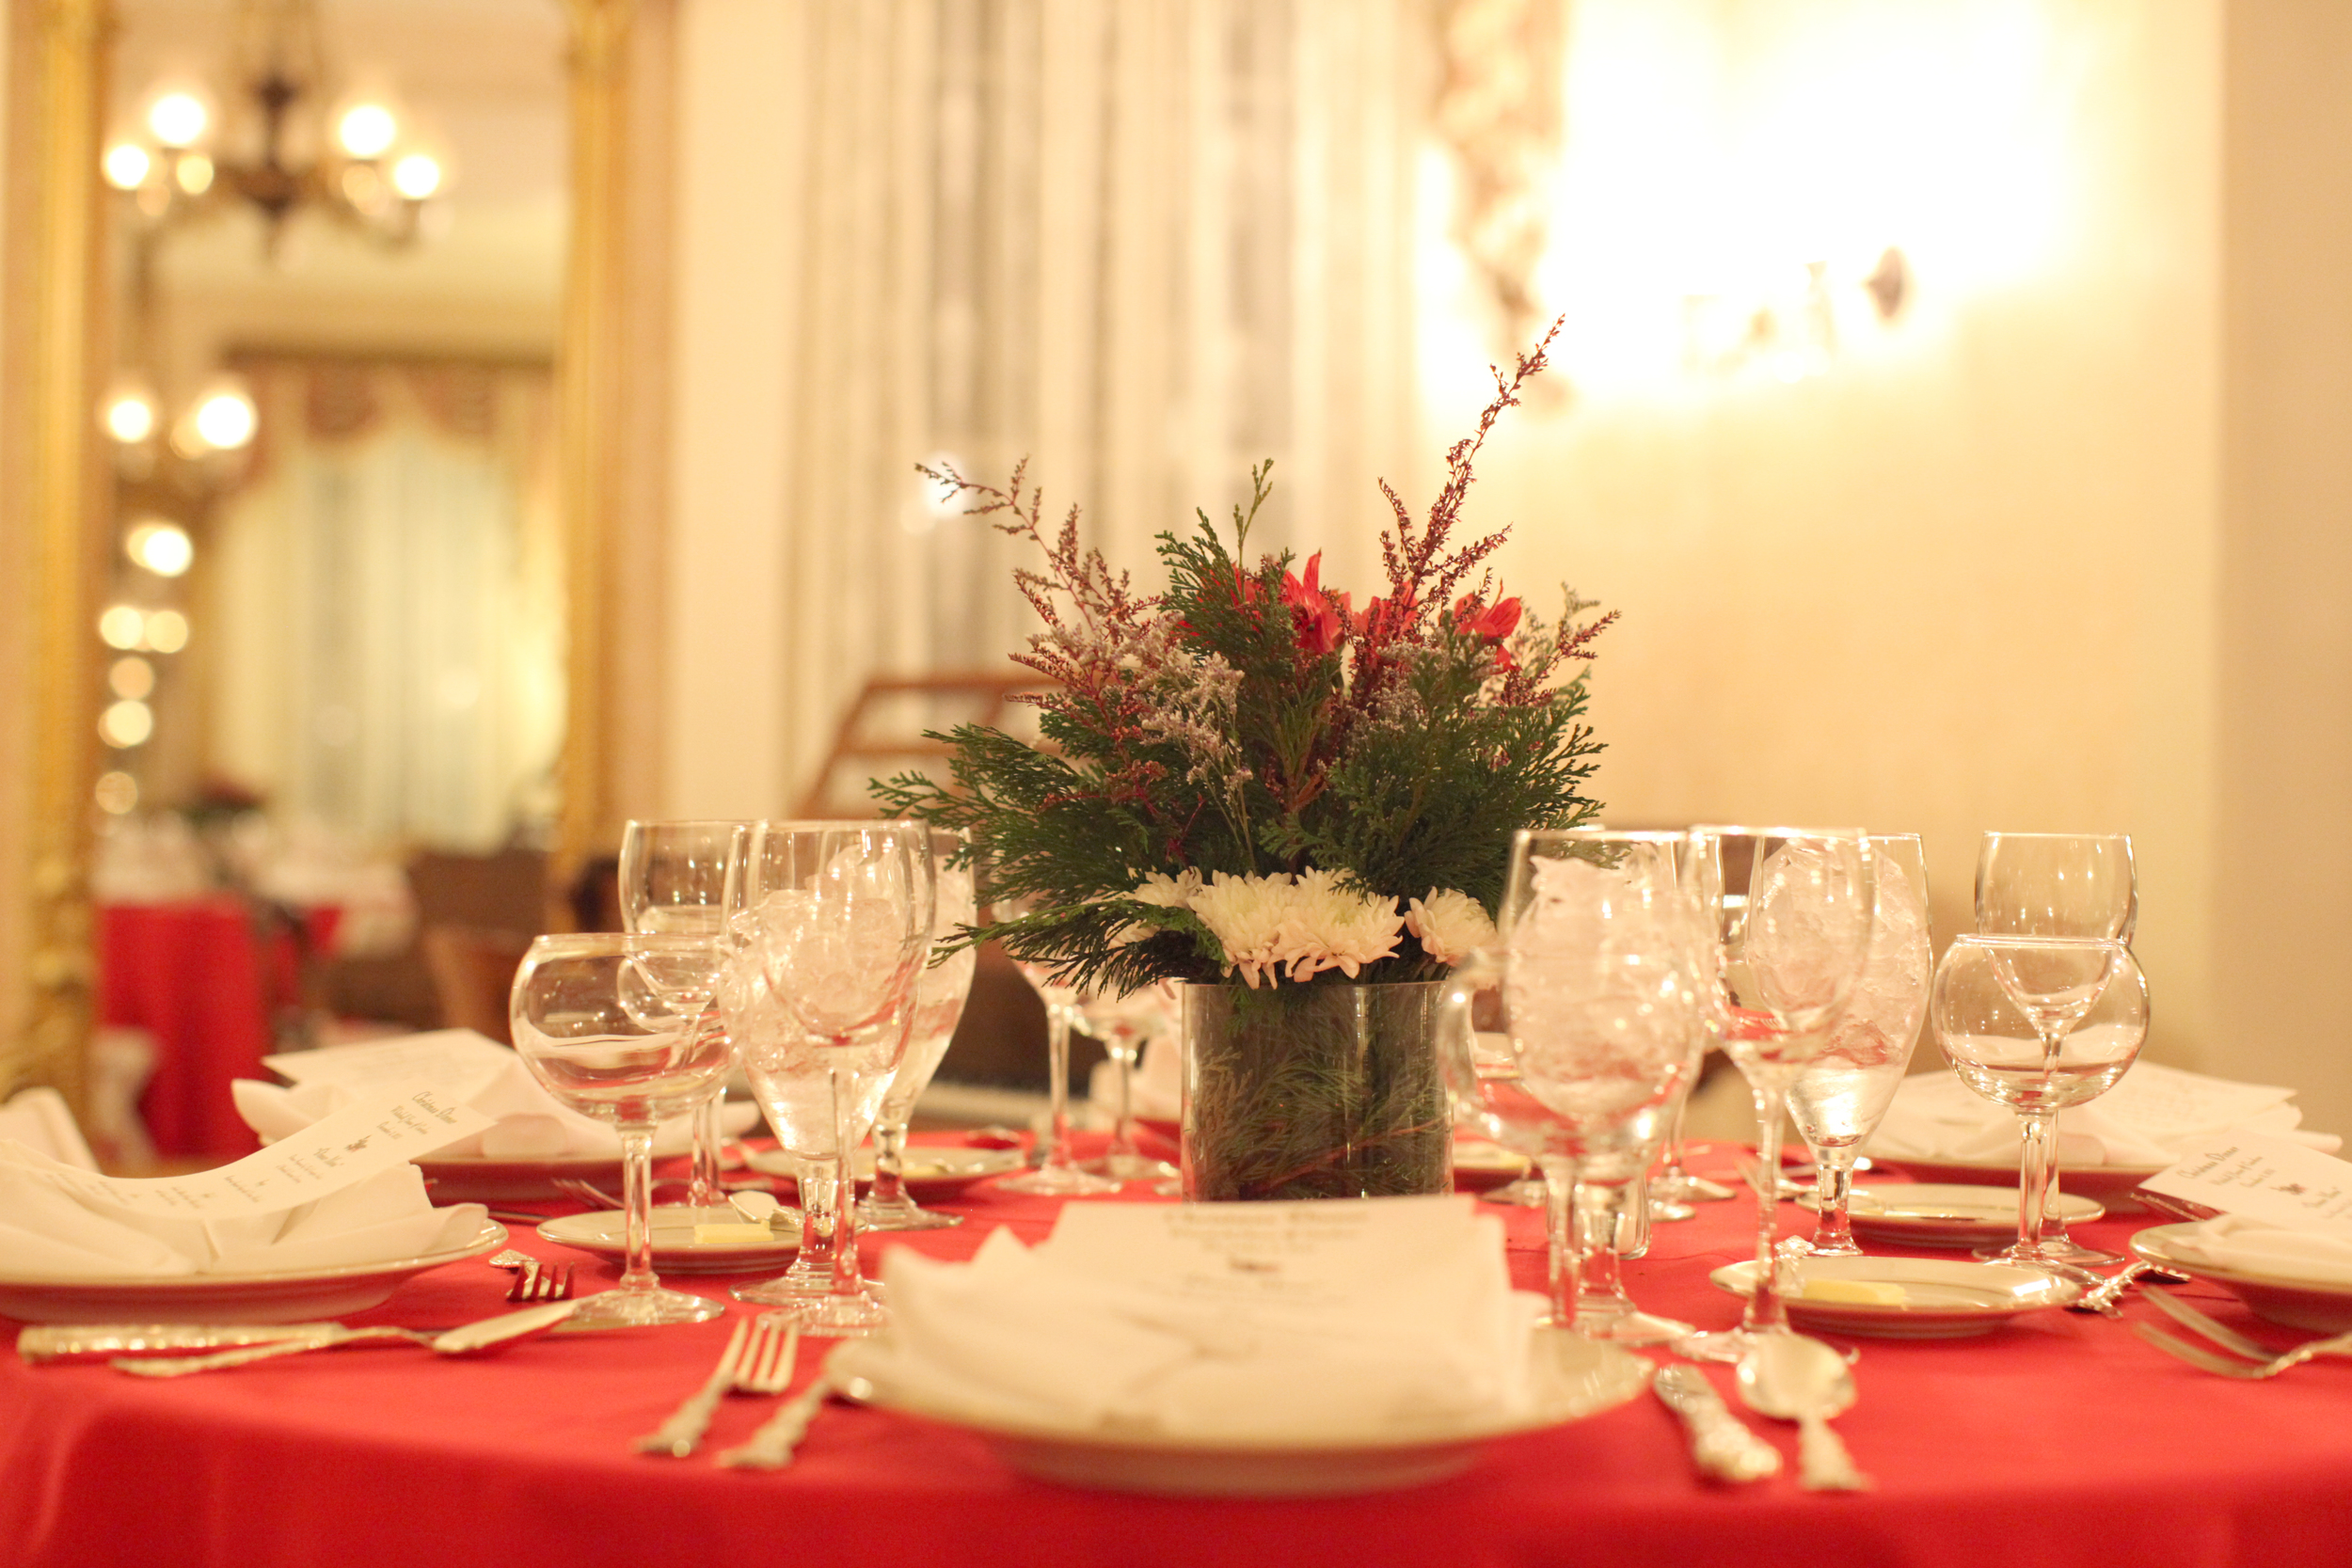 Whitehalls Christmas Candlelight Tour 2020 Valentine's Dinner — Whitehall